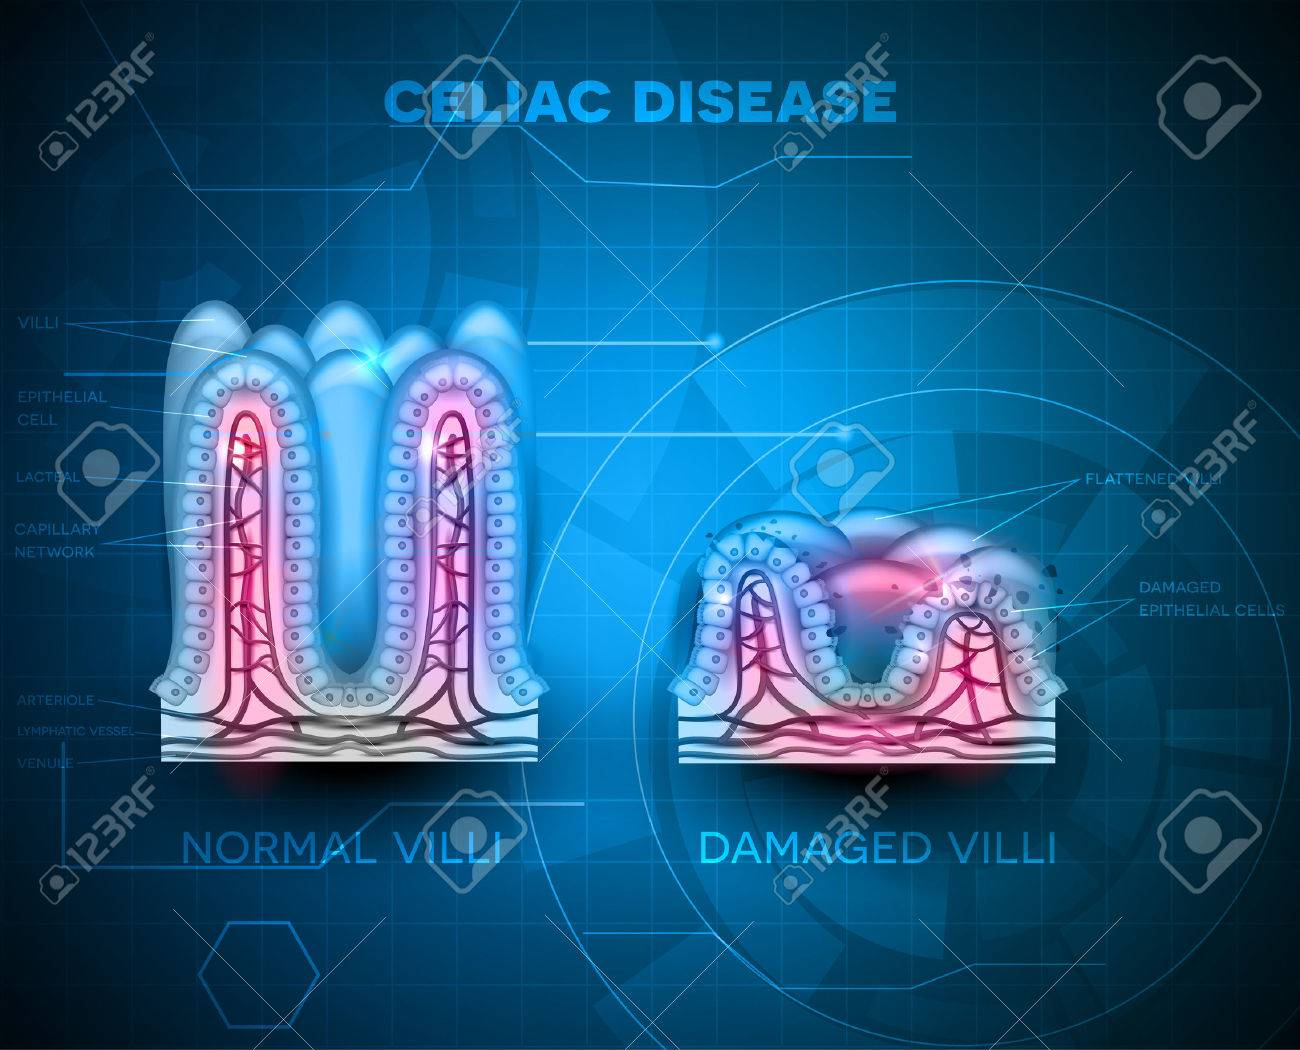 Celiac disease affected small intestine villi. Healthy villi and unhealthy villi with damaged cells on a blue technology background Banque d'images - 54018258